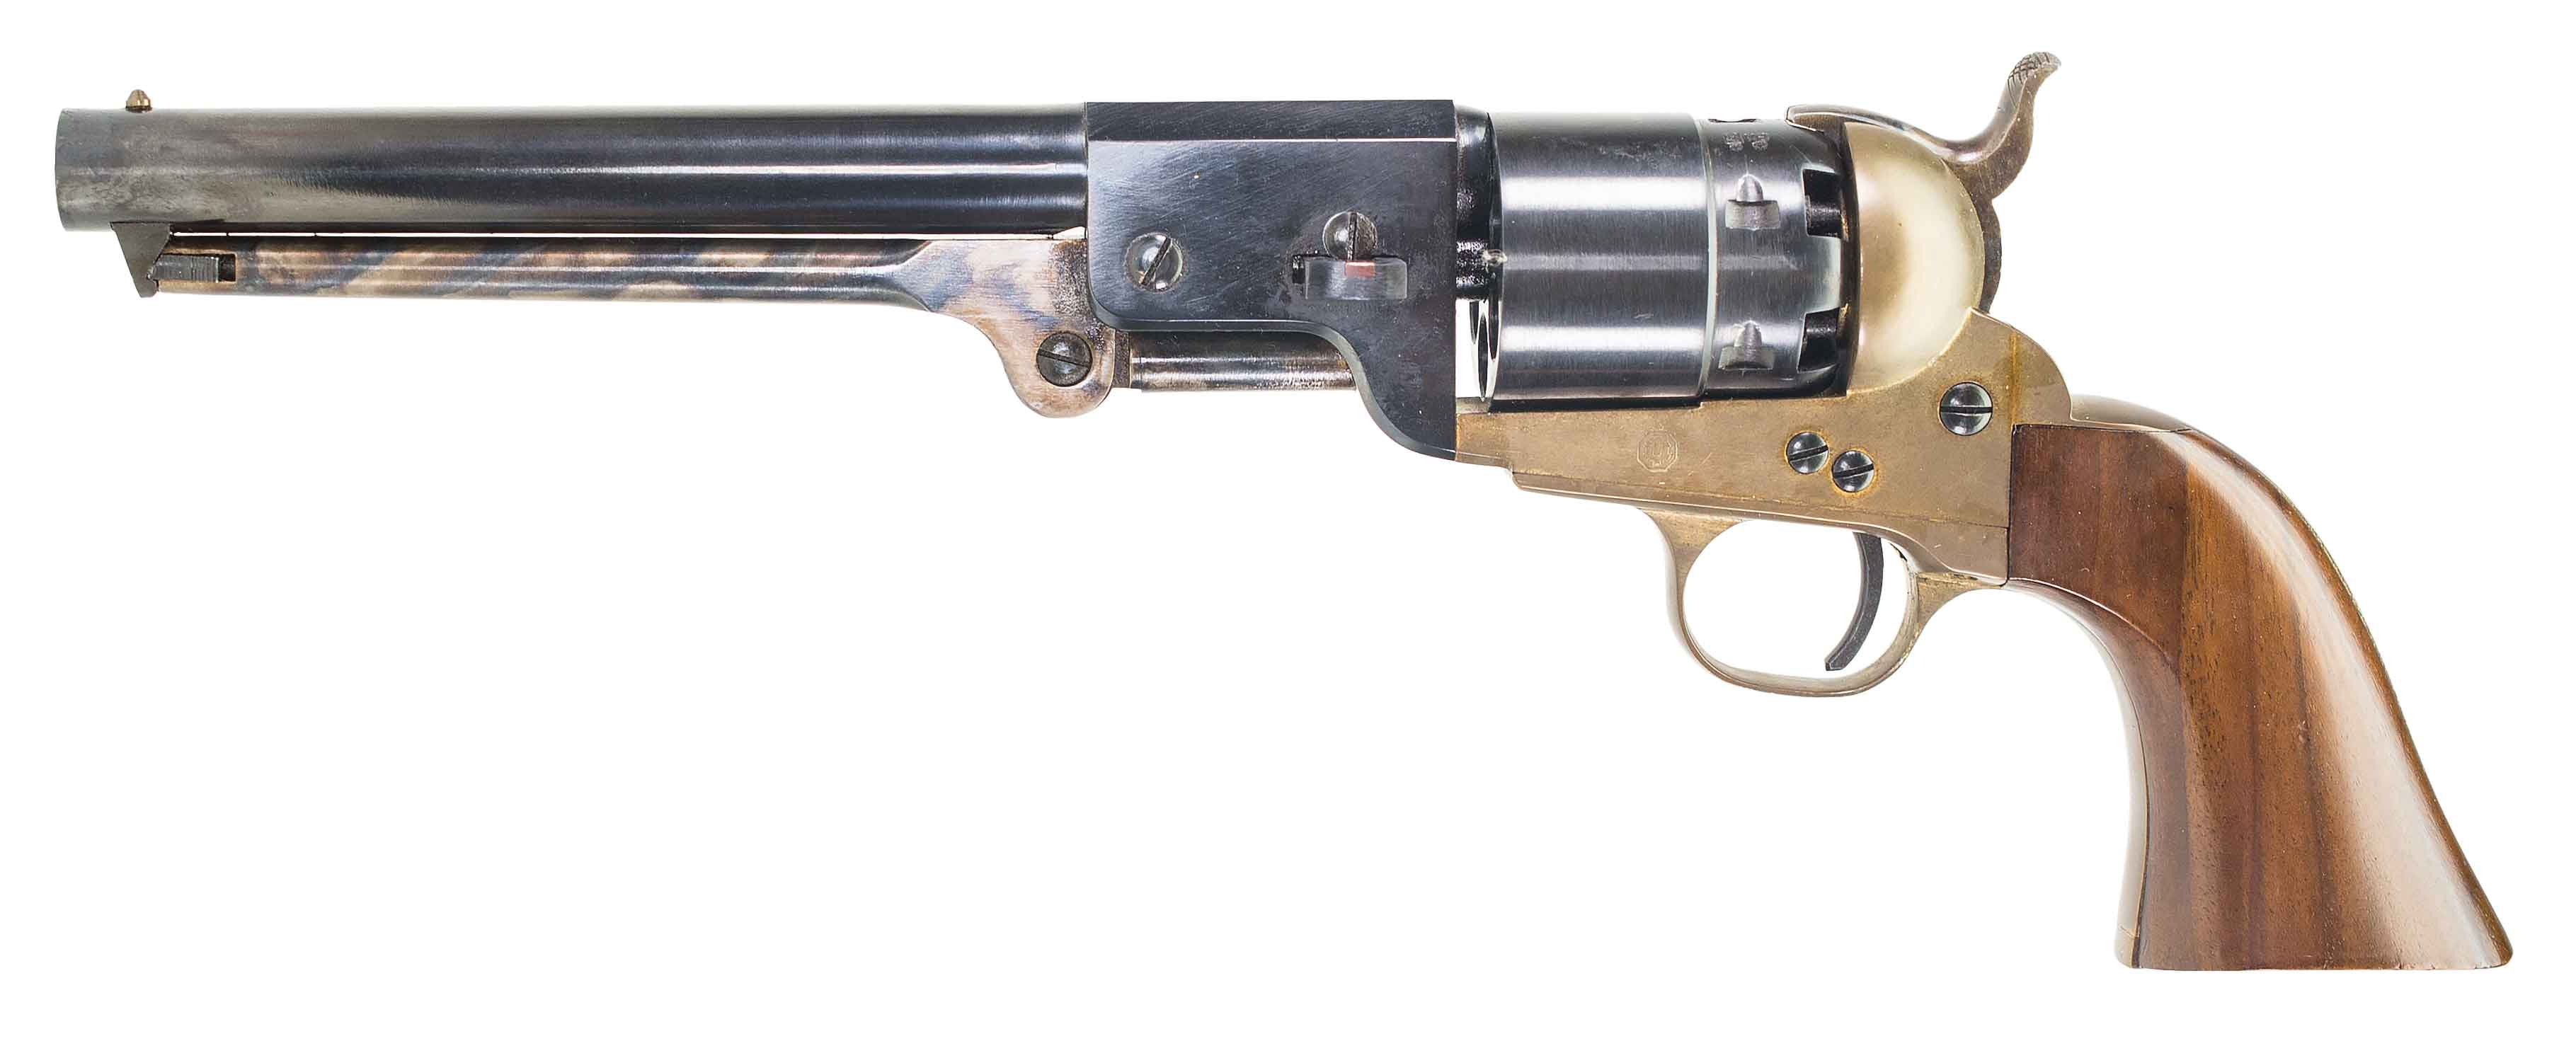 48c51fb6eec NAVY ARMS REPLICA COLT MODEL 1860 ARMY REVOLVER (Auction ID  9891264 ...